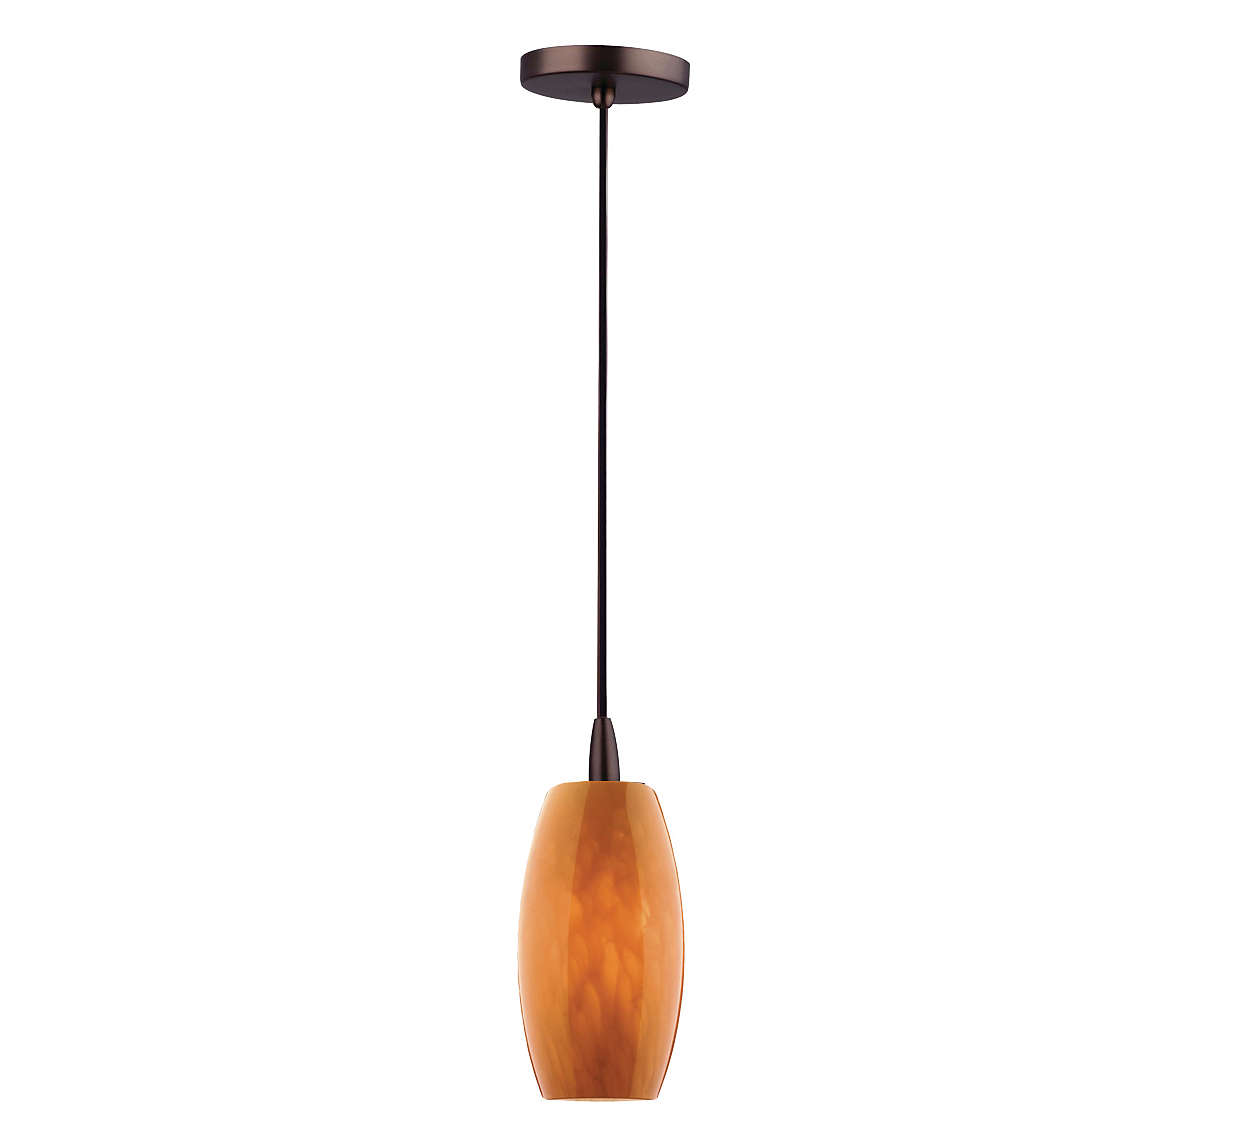 Wishes 1-light pendant in Merlot Bronze finish